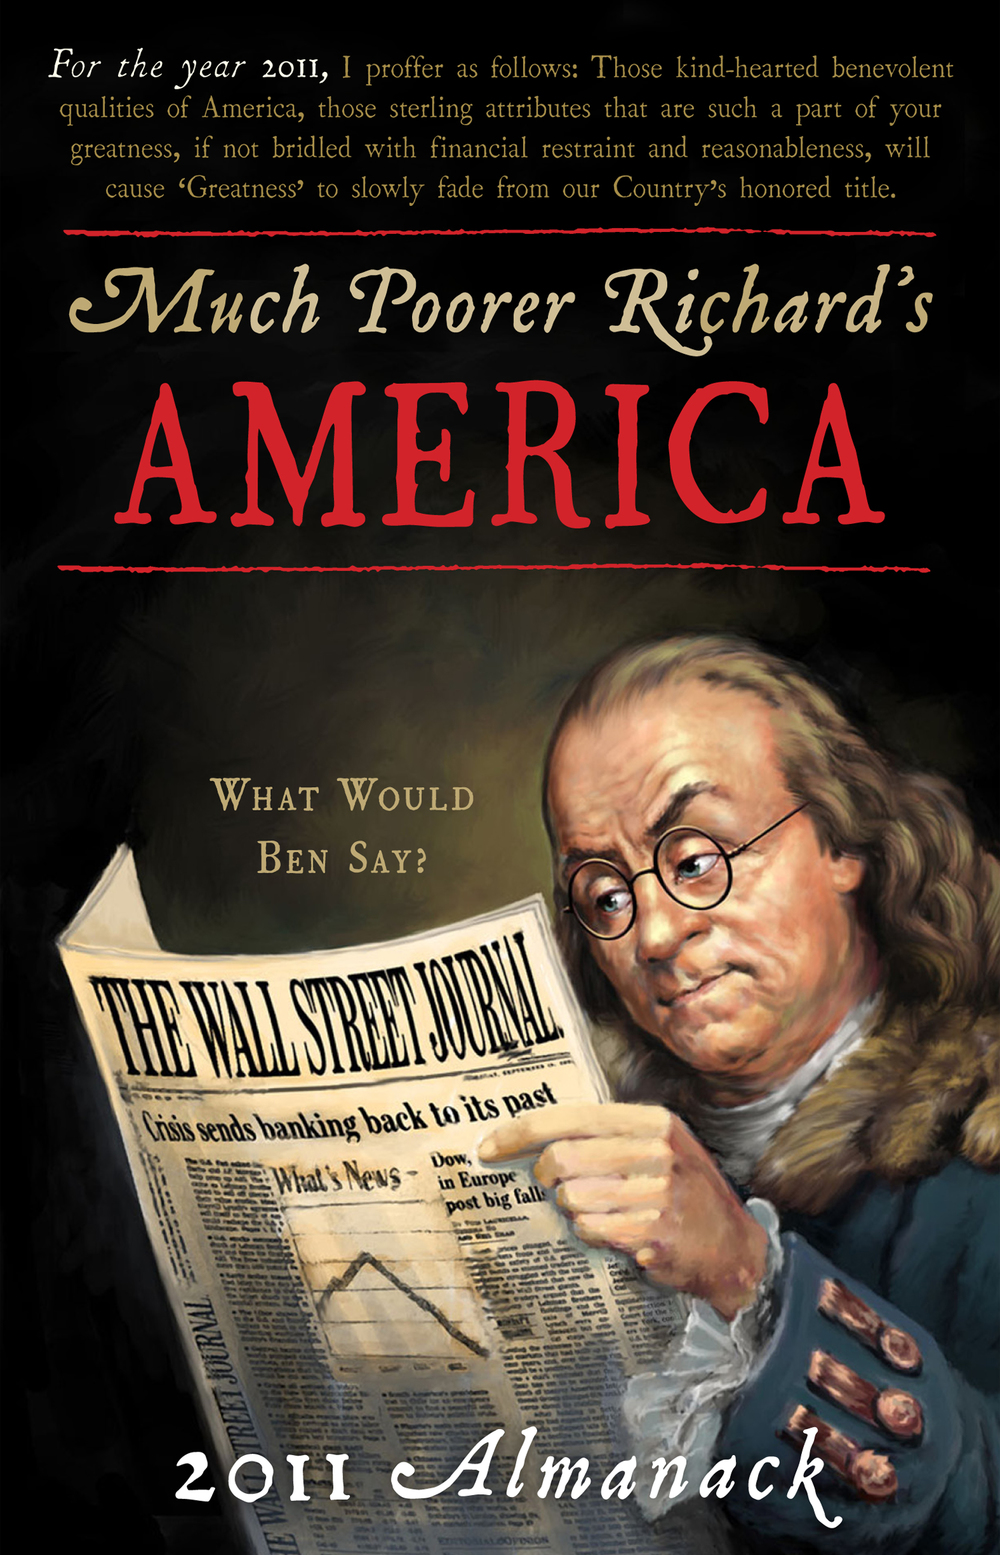 MUCH-POORER-RICHARDS-AMERICA-comp2-ss6.jpg